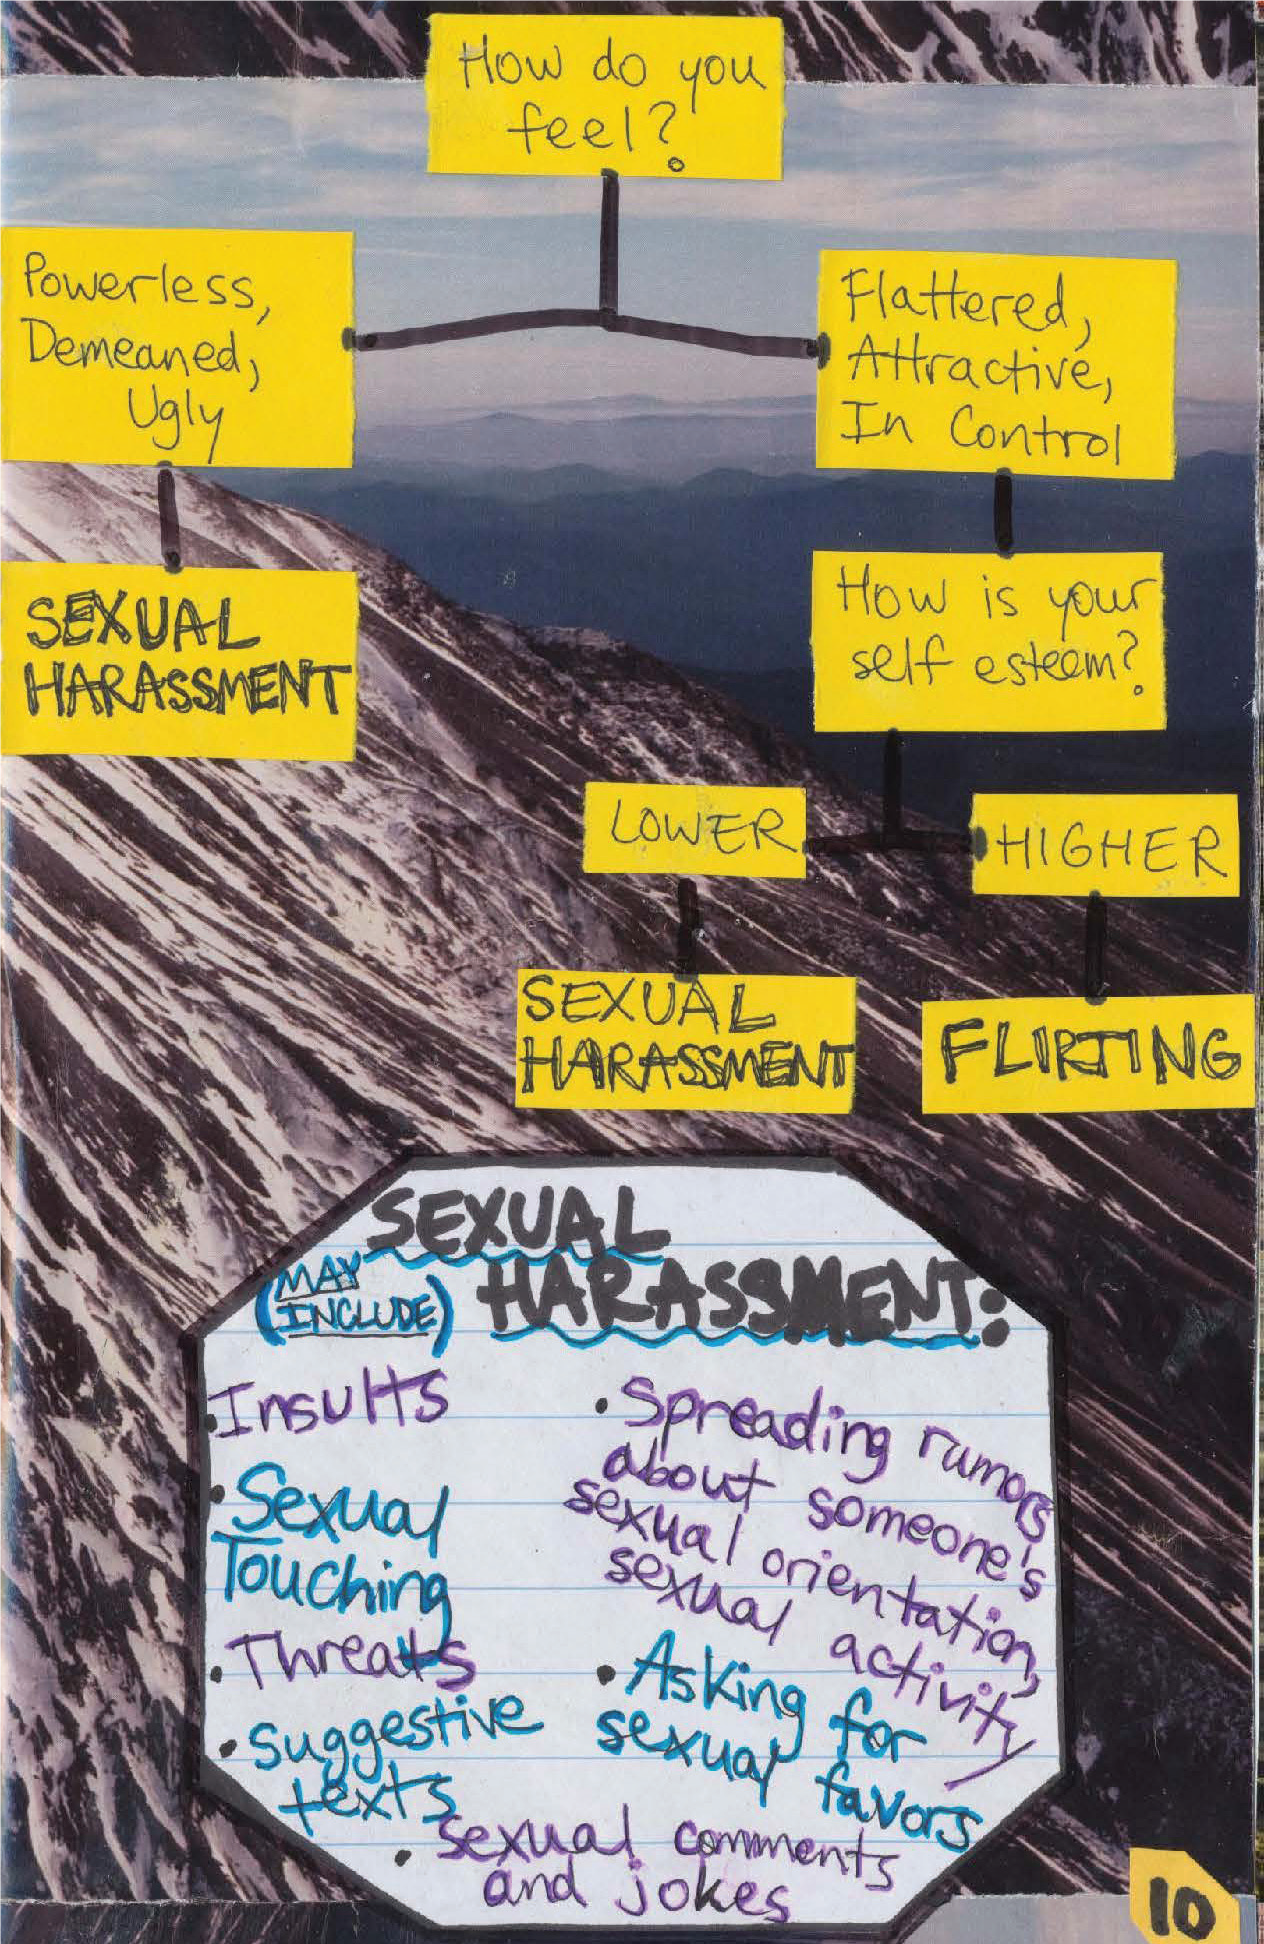 This is a page from the Crushin' It zine used in schools. This flow chart helps students think about how sexual harassment and flirting feel different. Does an interaction make you feel empowered, flattered and in control? Or do you feel demeaned, objectified, ugly, or unsafe? How is your self esteem?